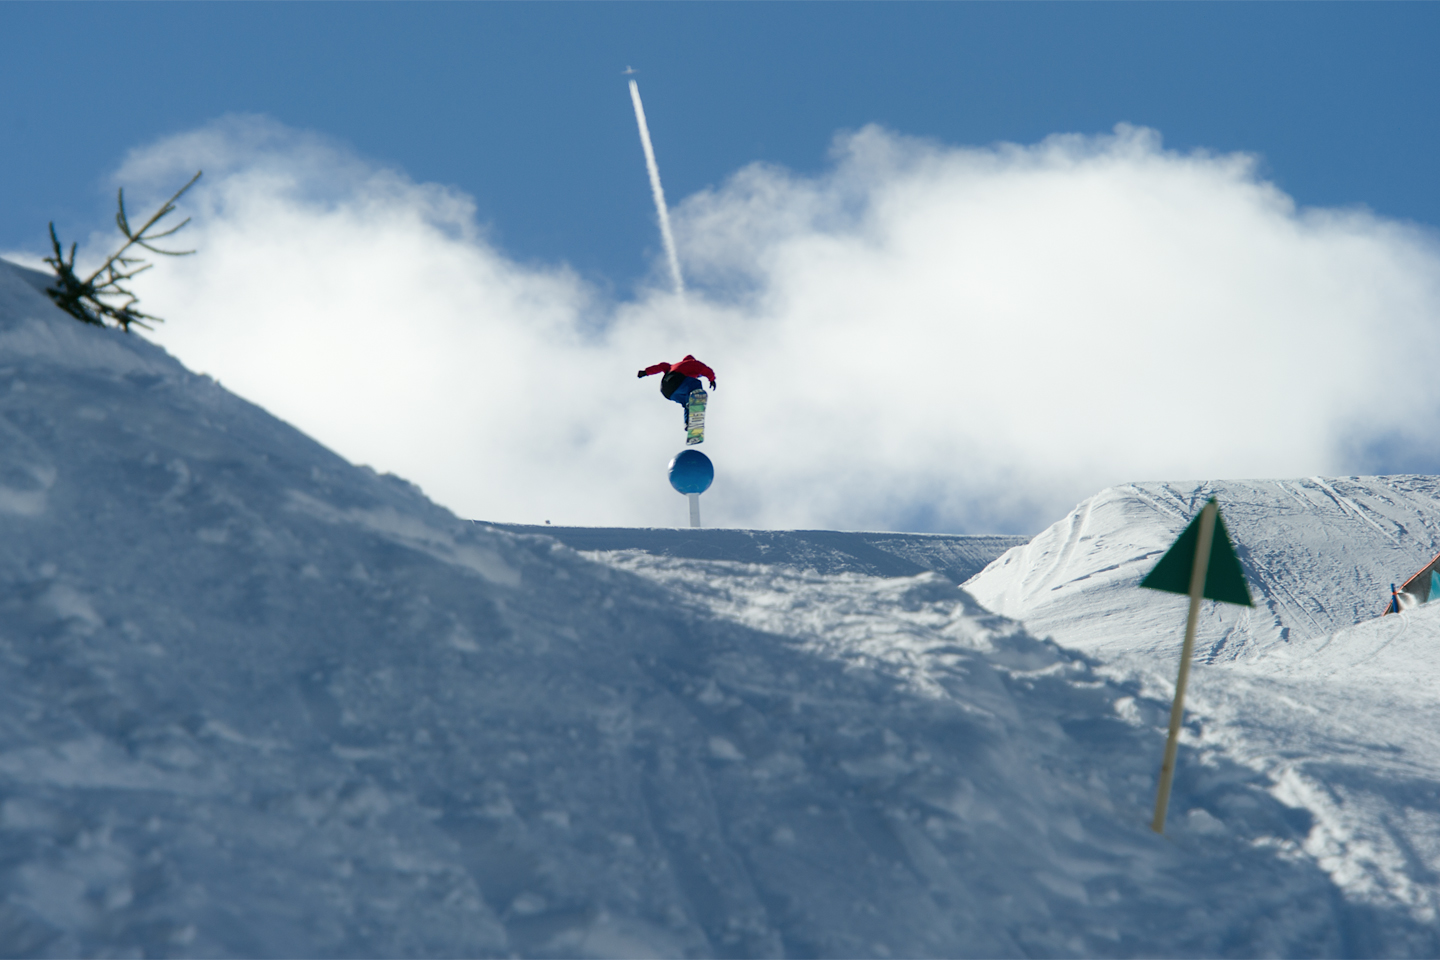 Tim Humphreys, Snowboard Slopestyle